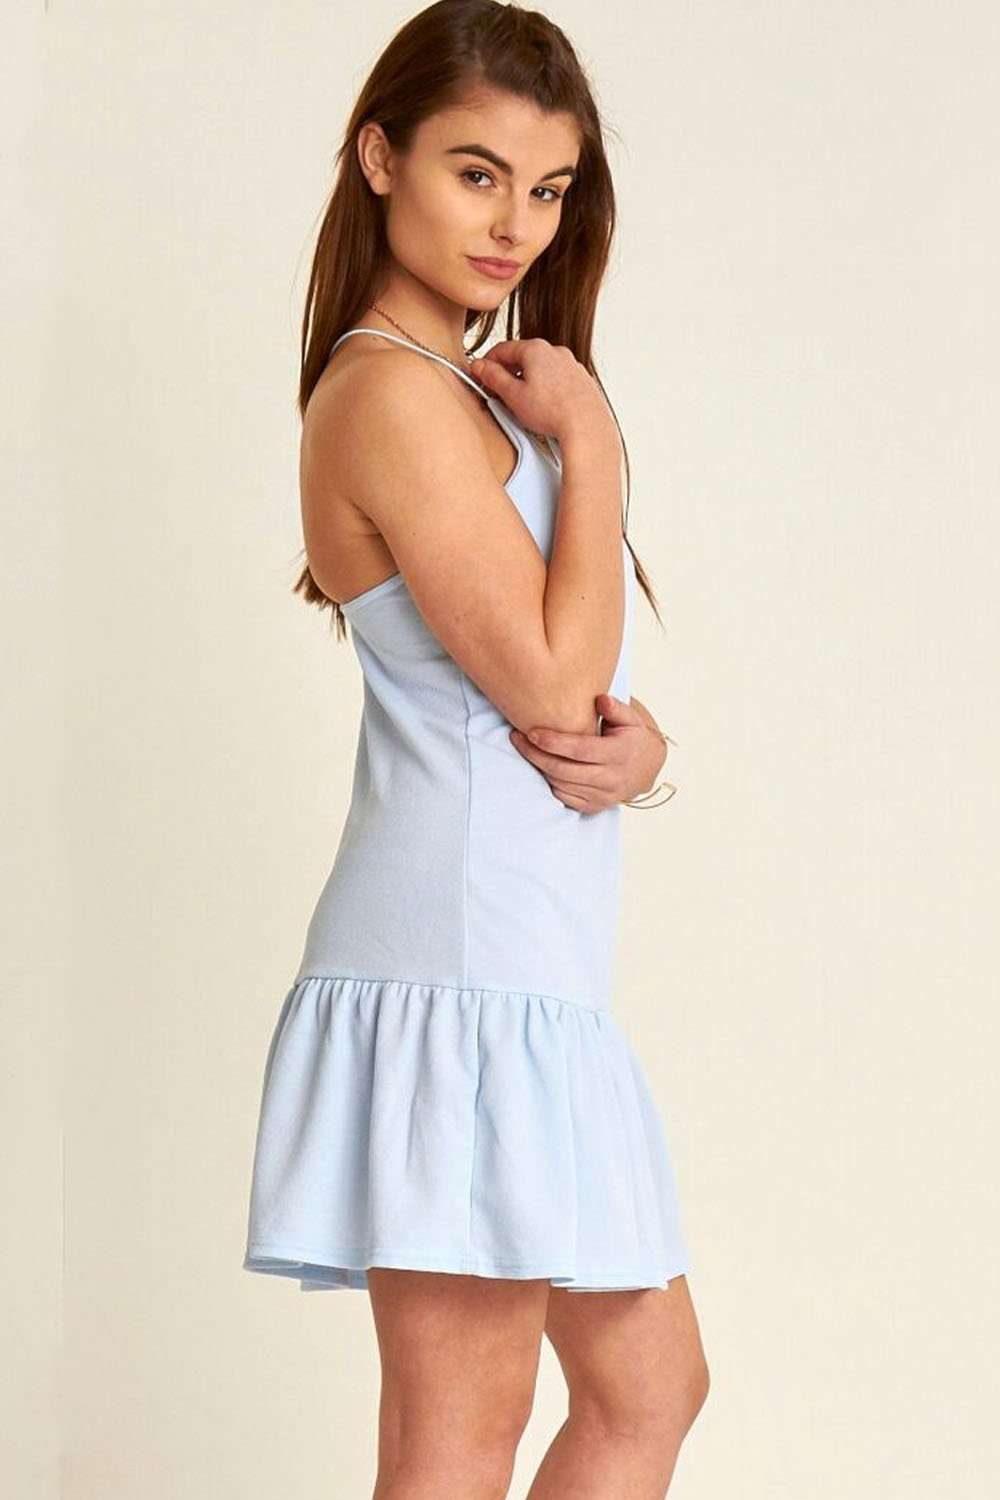 Lois Racer Back Frill Trim Mini Dress - bejealous-com